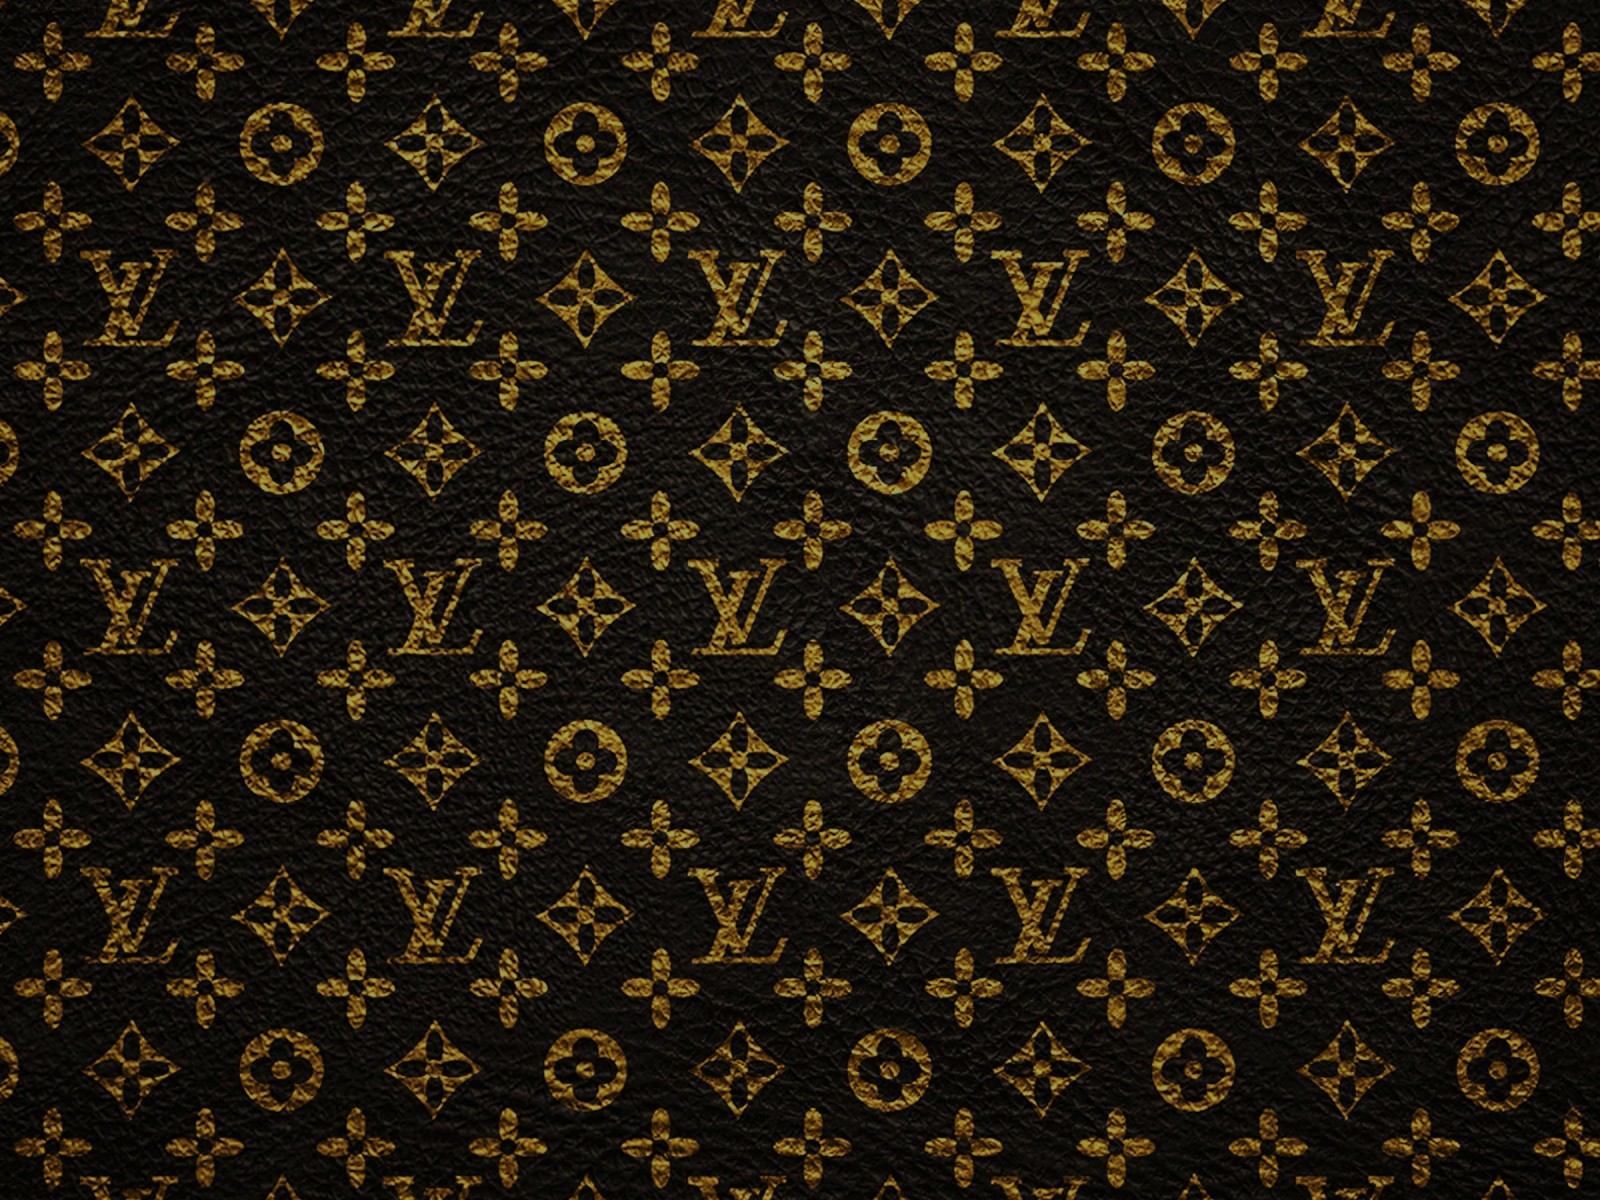 Louis Vuitton Pattern Wallpaper for Desktop 1600x1200